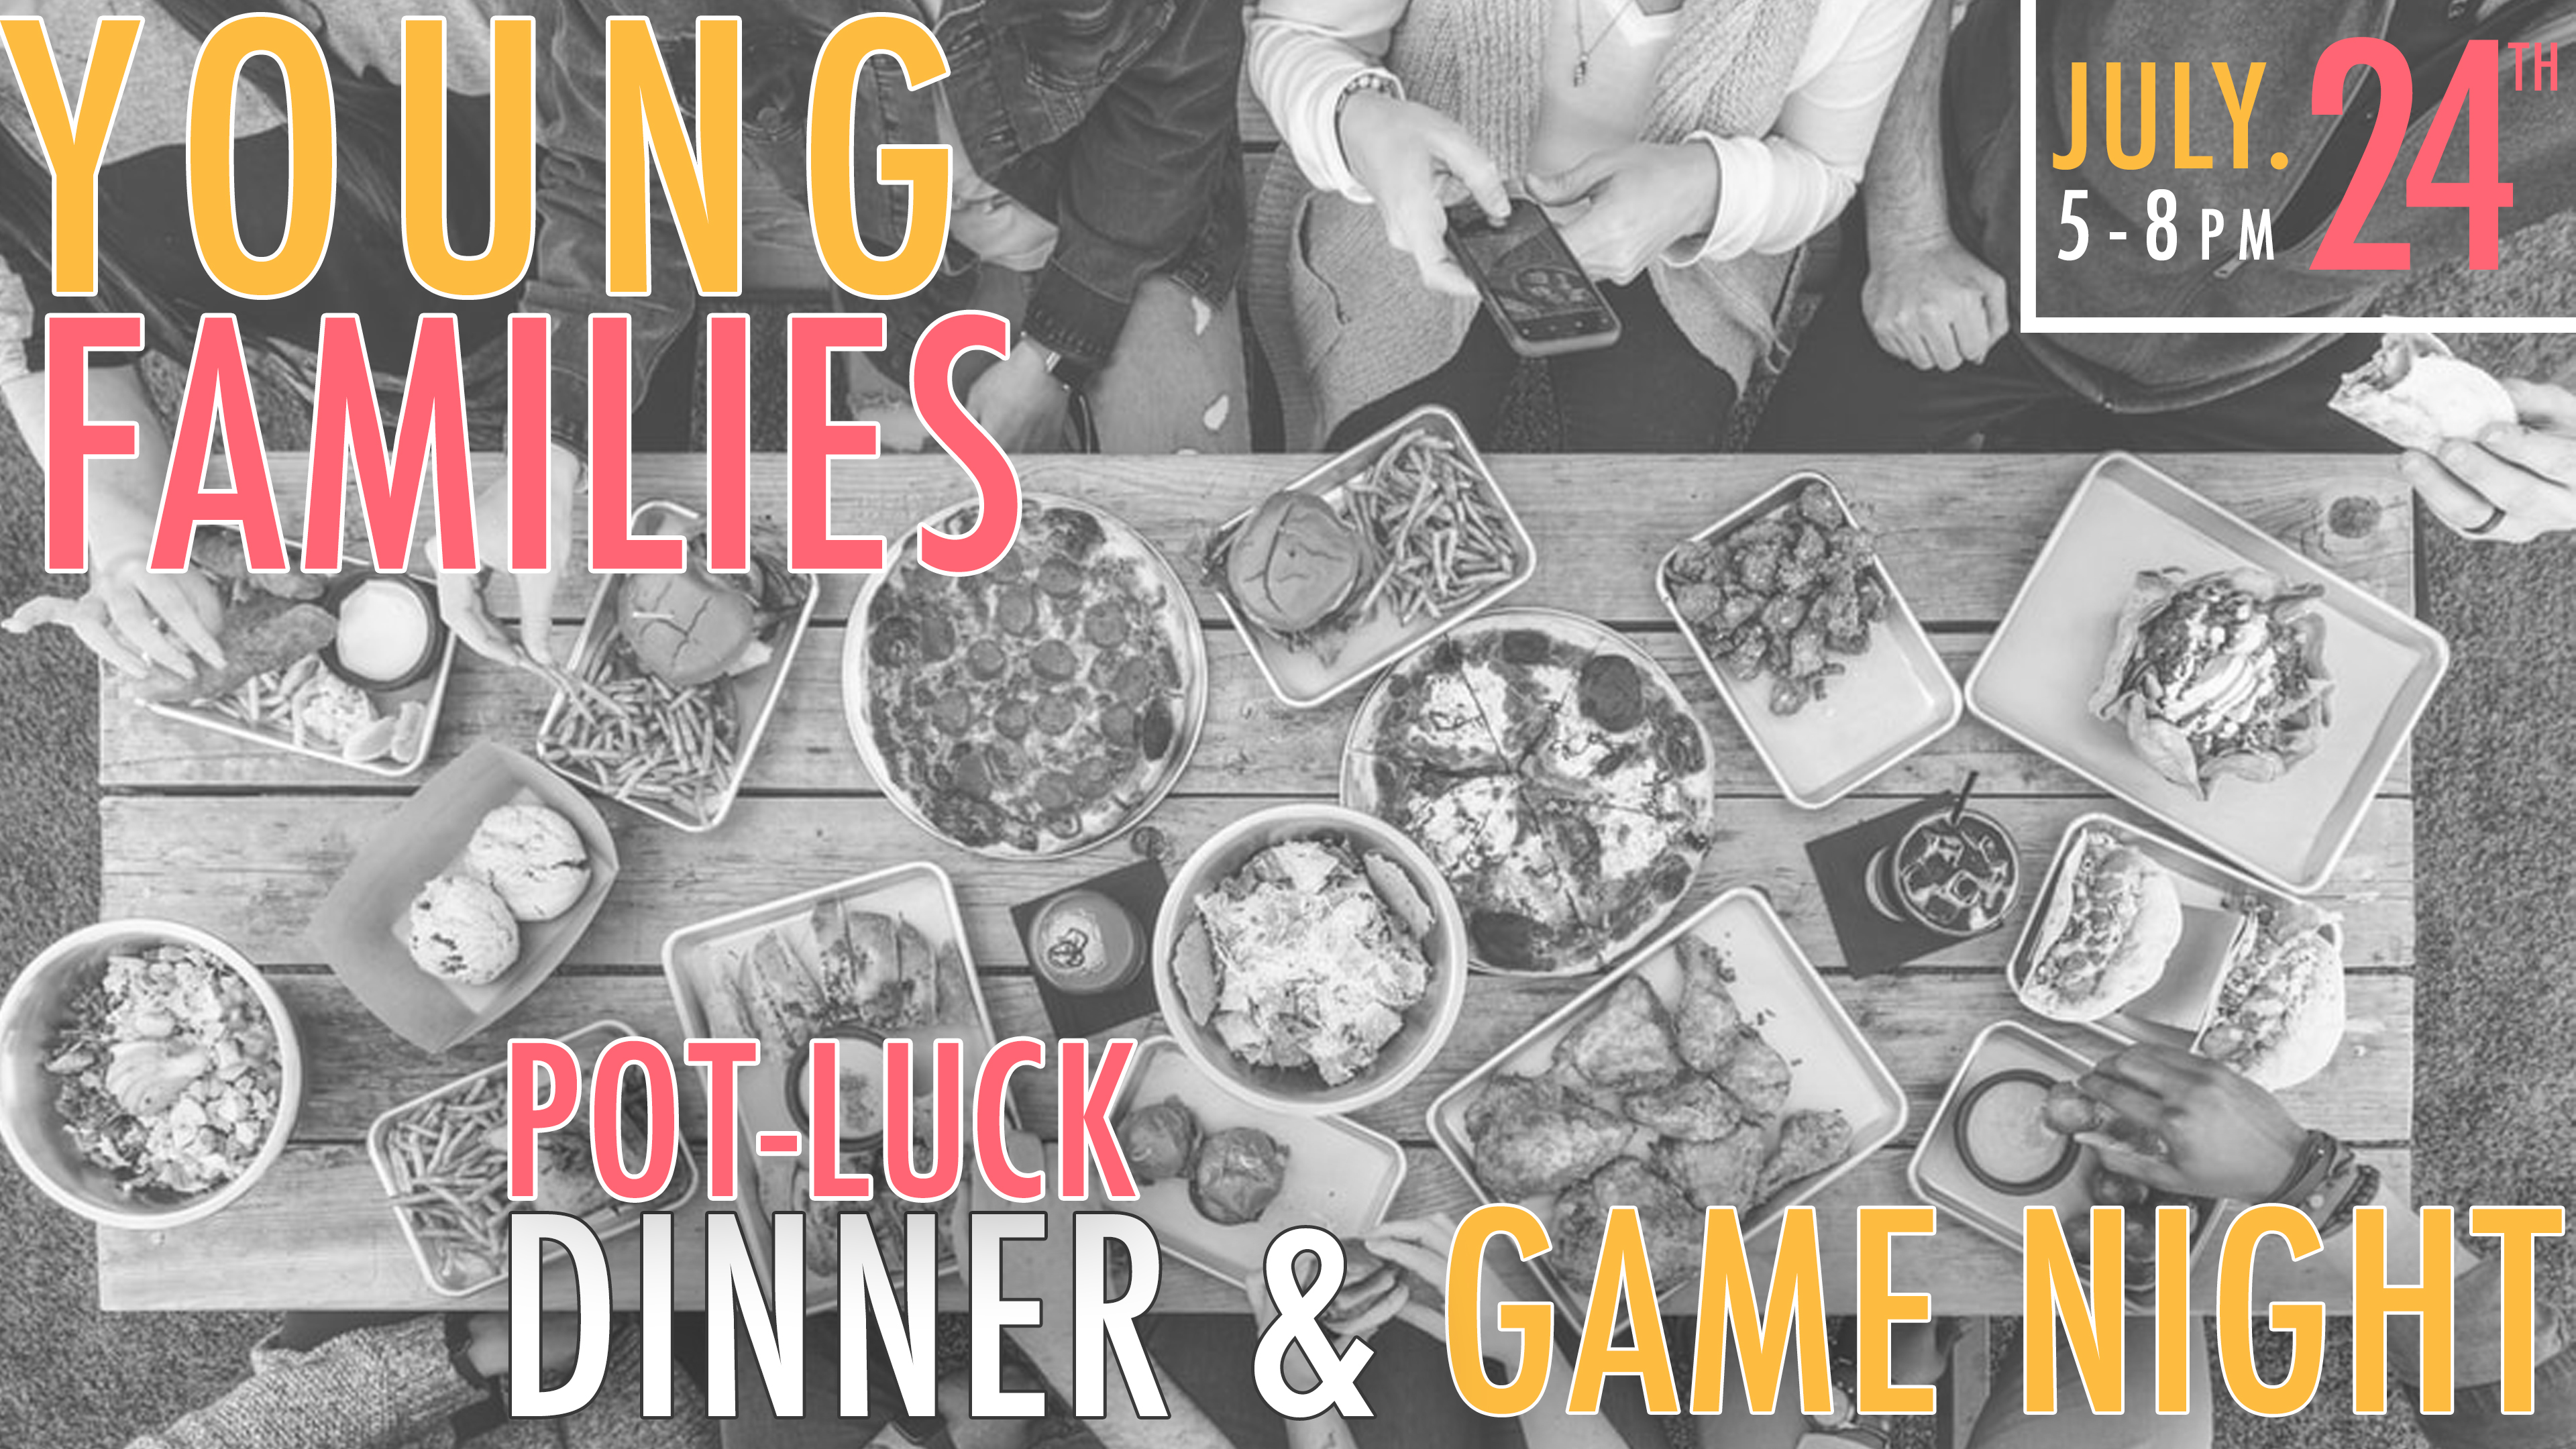 Young Families Game Night and Potluck